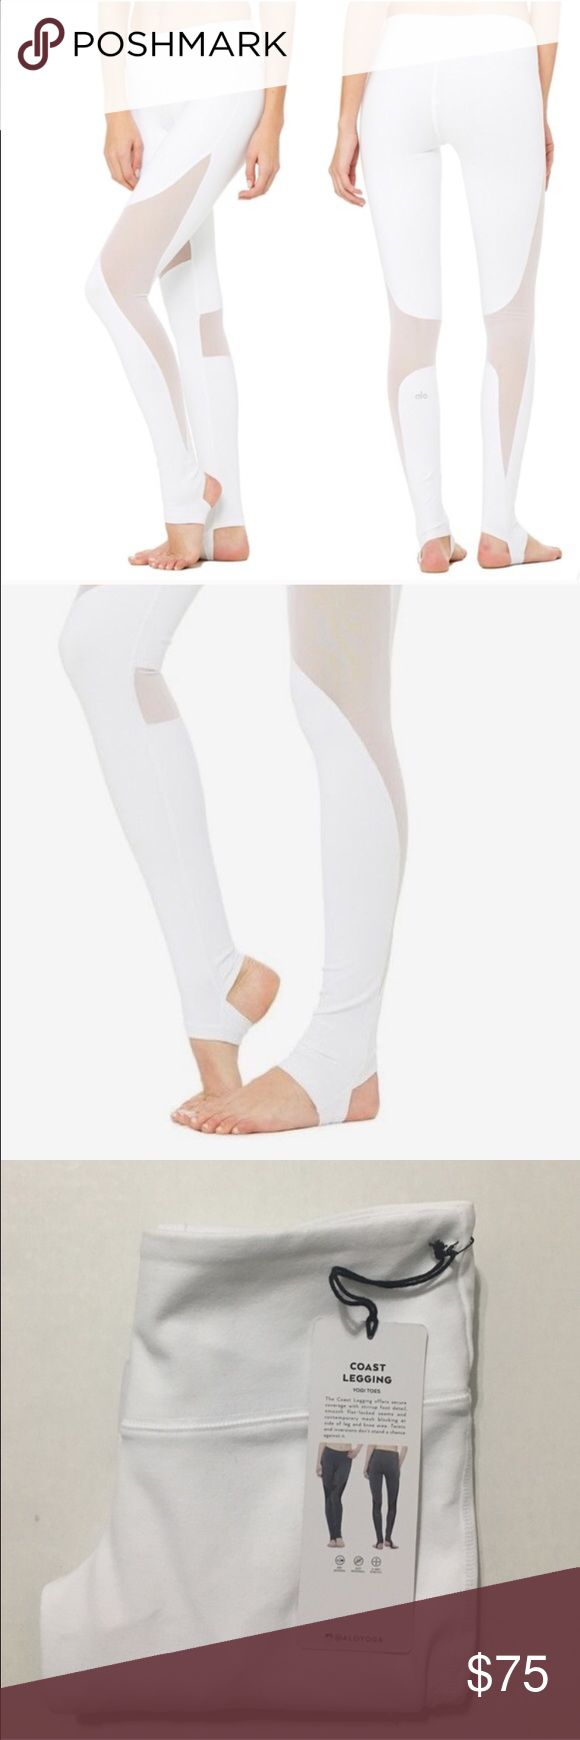 "ALO Yoga Coast Leggings XS Yogi toes. The Coast Legging offers secure coverage with stirrup foot detail, smooth seams and contemporary mesh blocking at side of leg and knee area. Twists and inversions don't stand a chance against it.  Retails for $94. Color: white Condition: BNWT  I would say these run a little small, they're a little snug on me and I am normally an XS in ALO. I'm 5'2"", 110 lbs, 25 waist. ALO Yoga Pants Leggings"